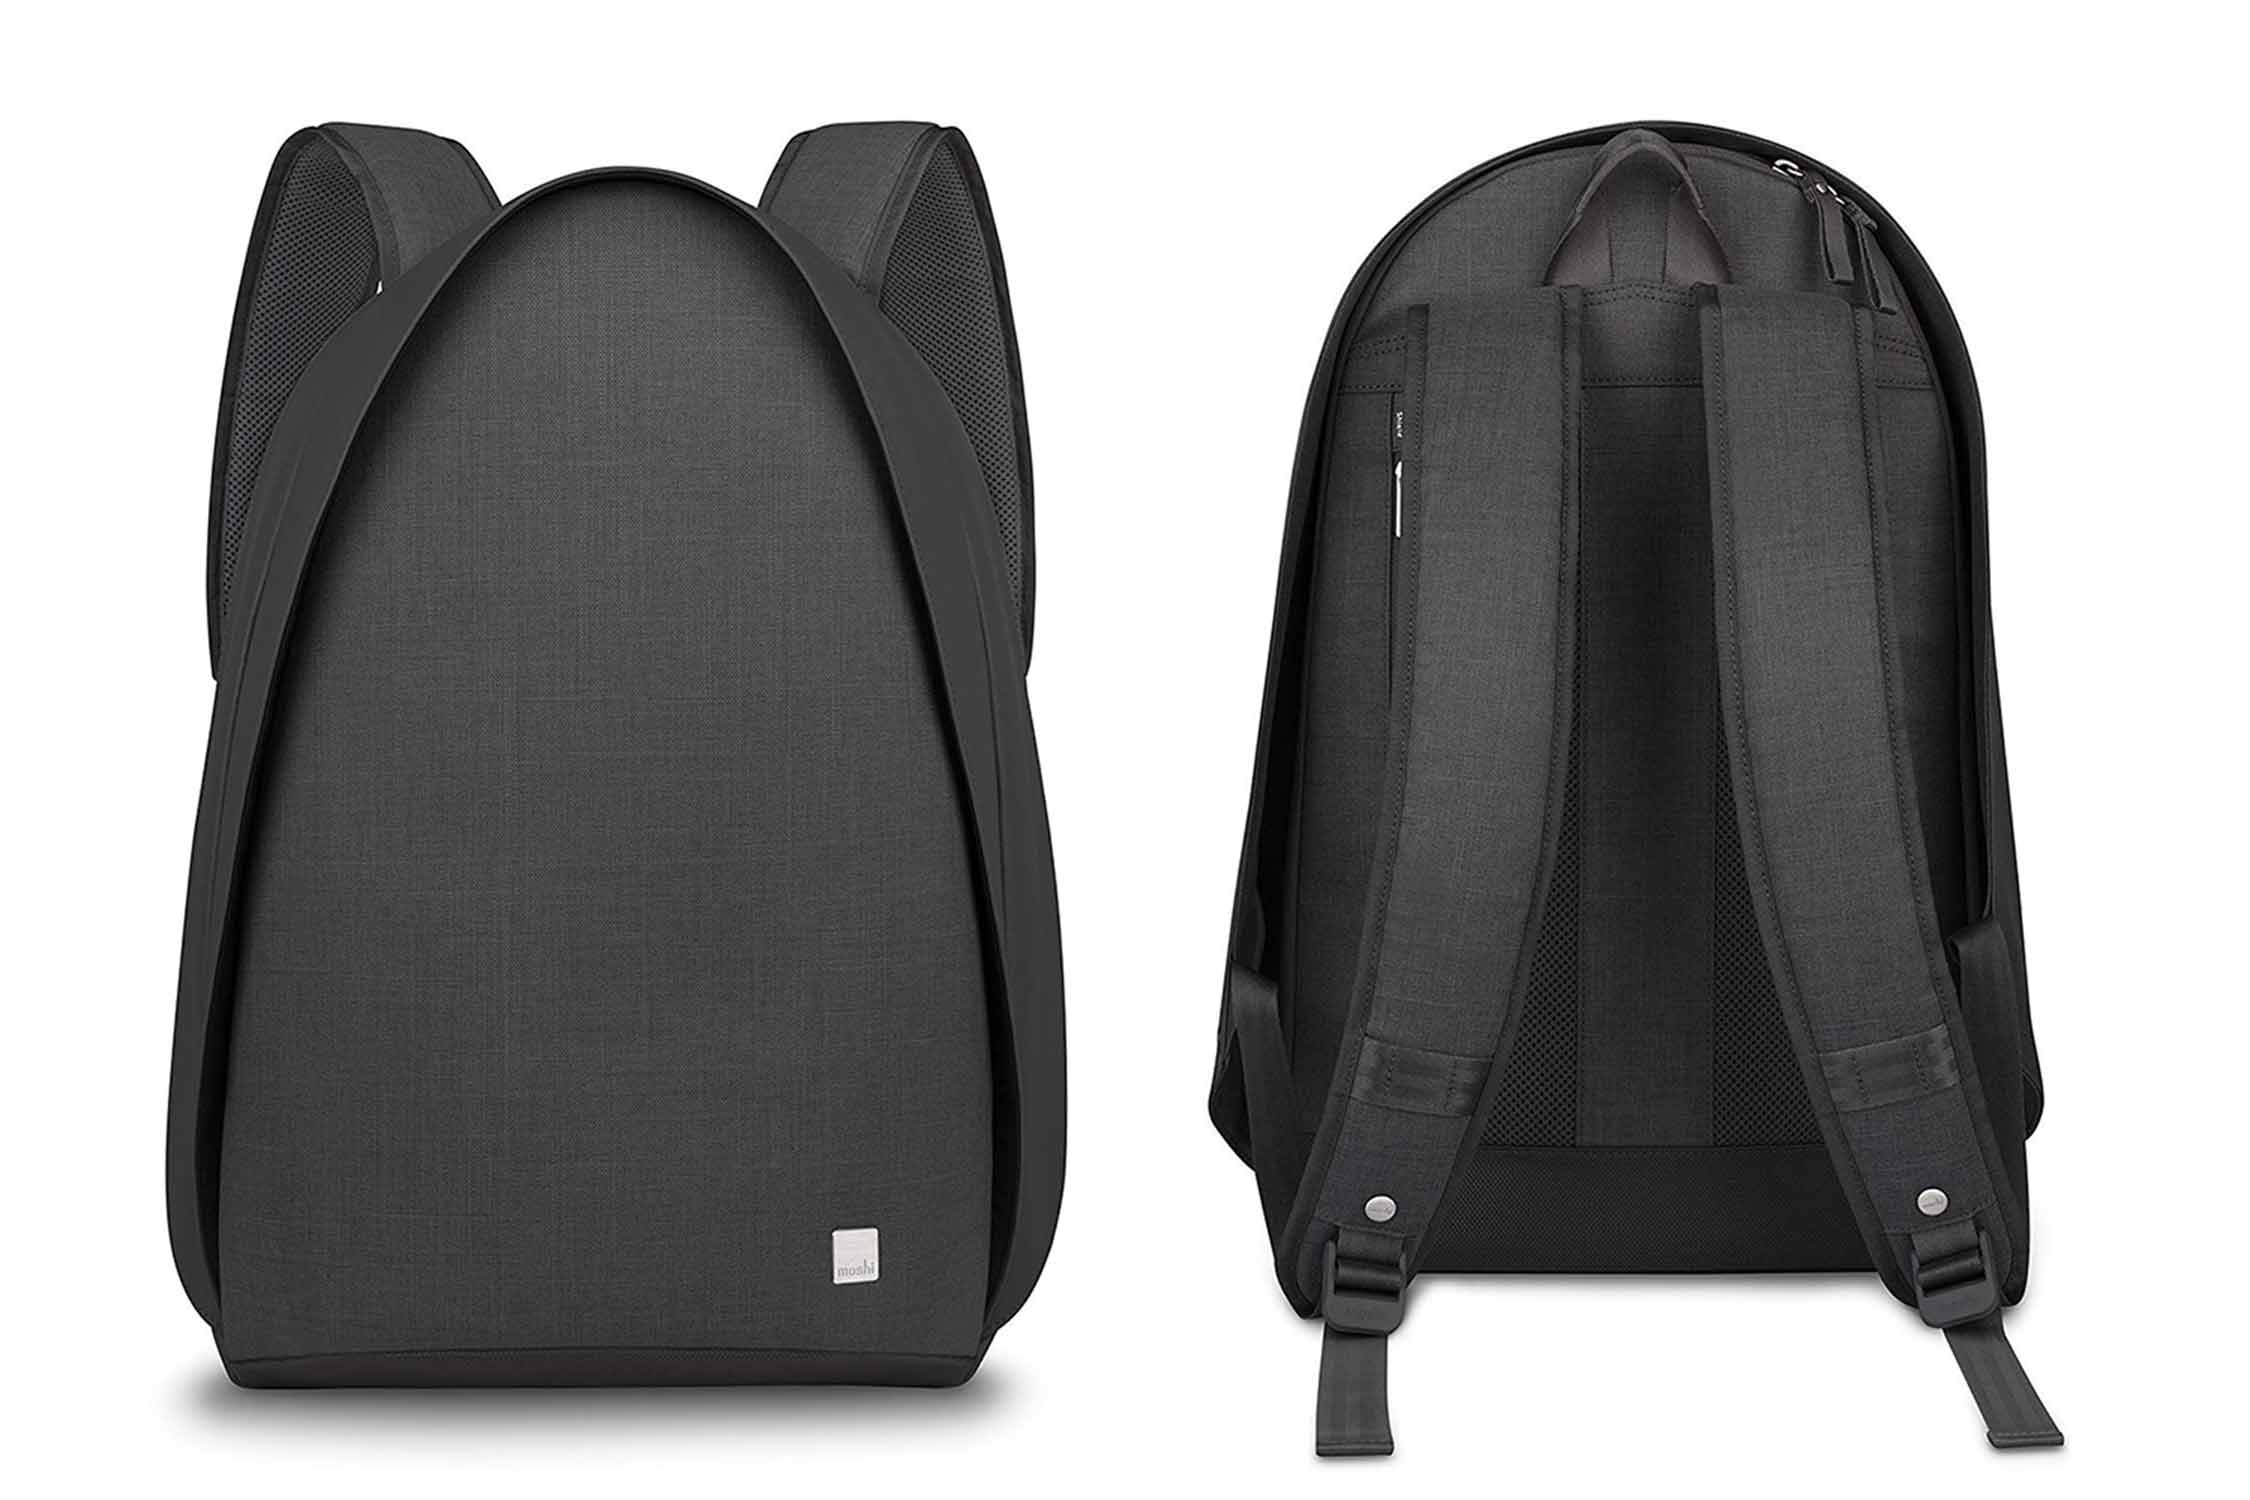 moshi tego backpack 製品 写真